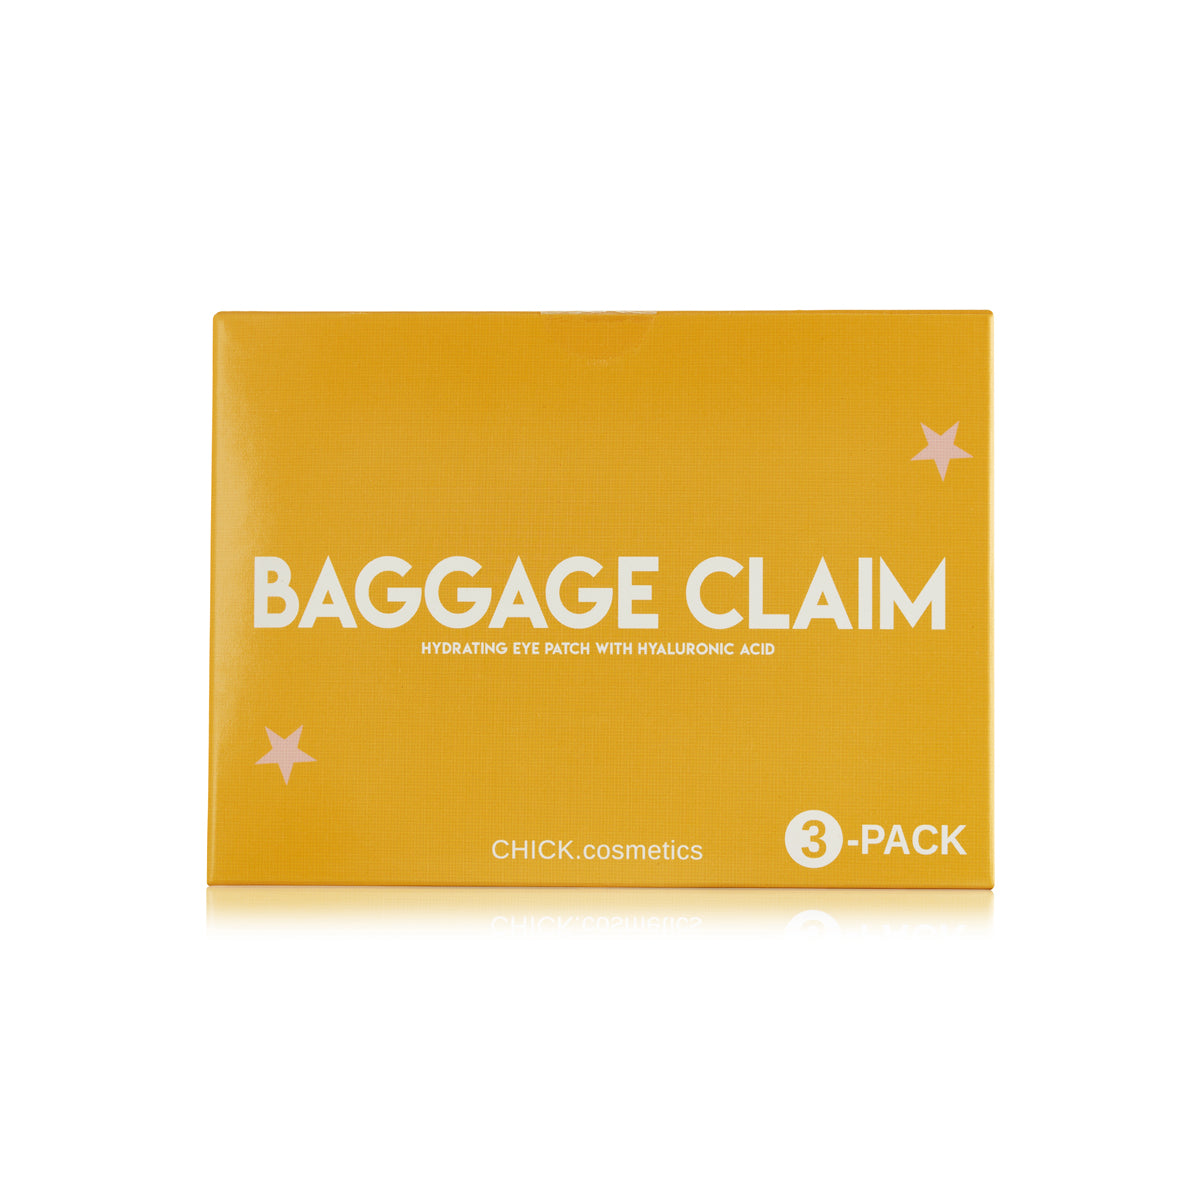 Baggage Claim Hydrating Eye Patch